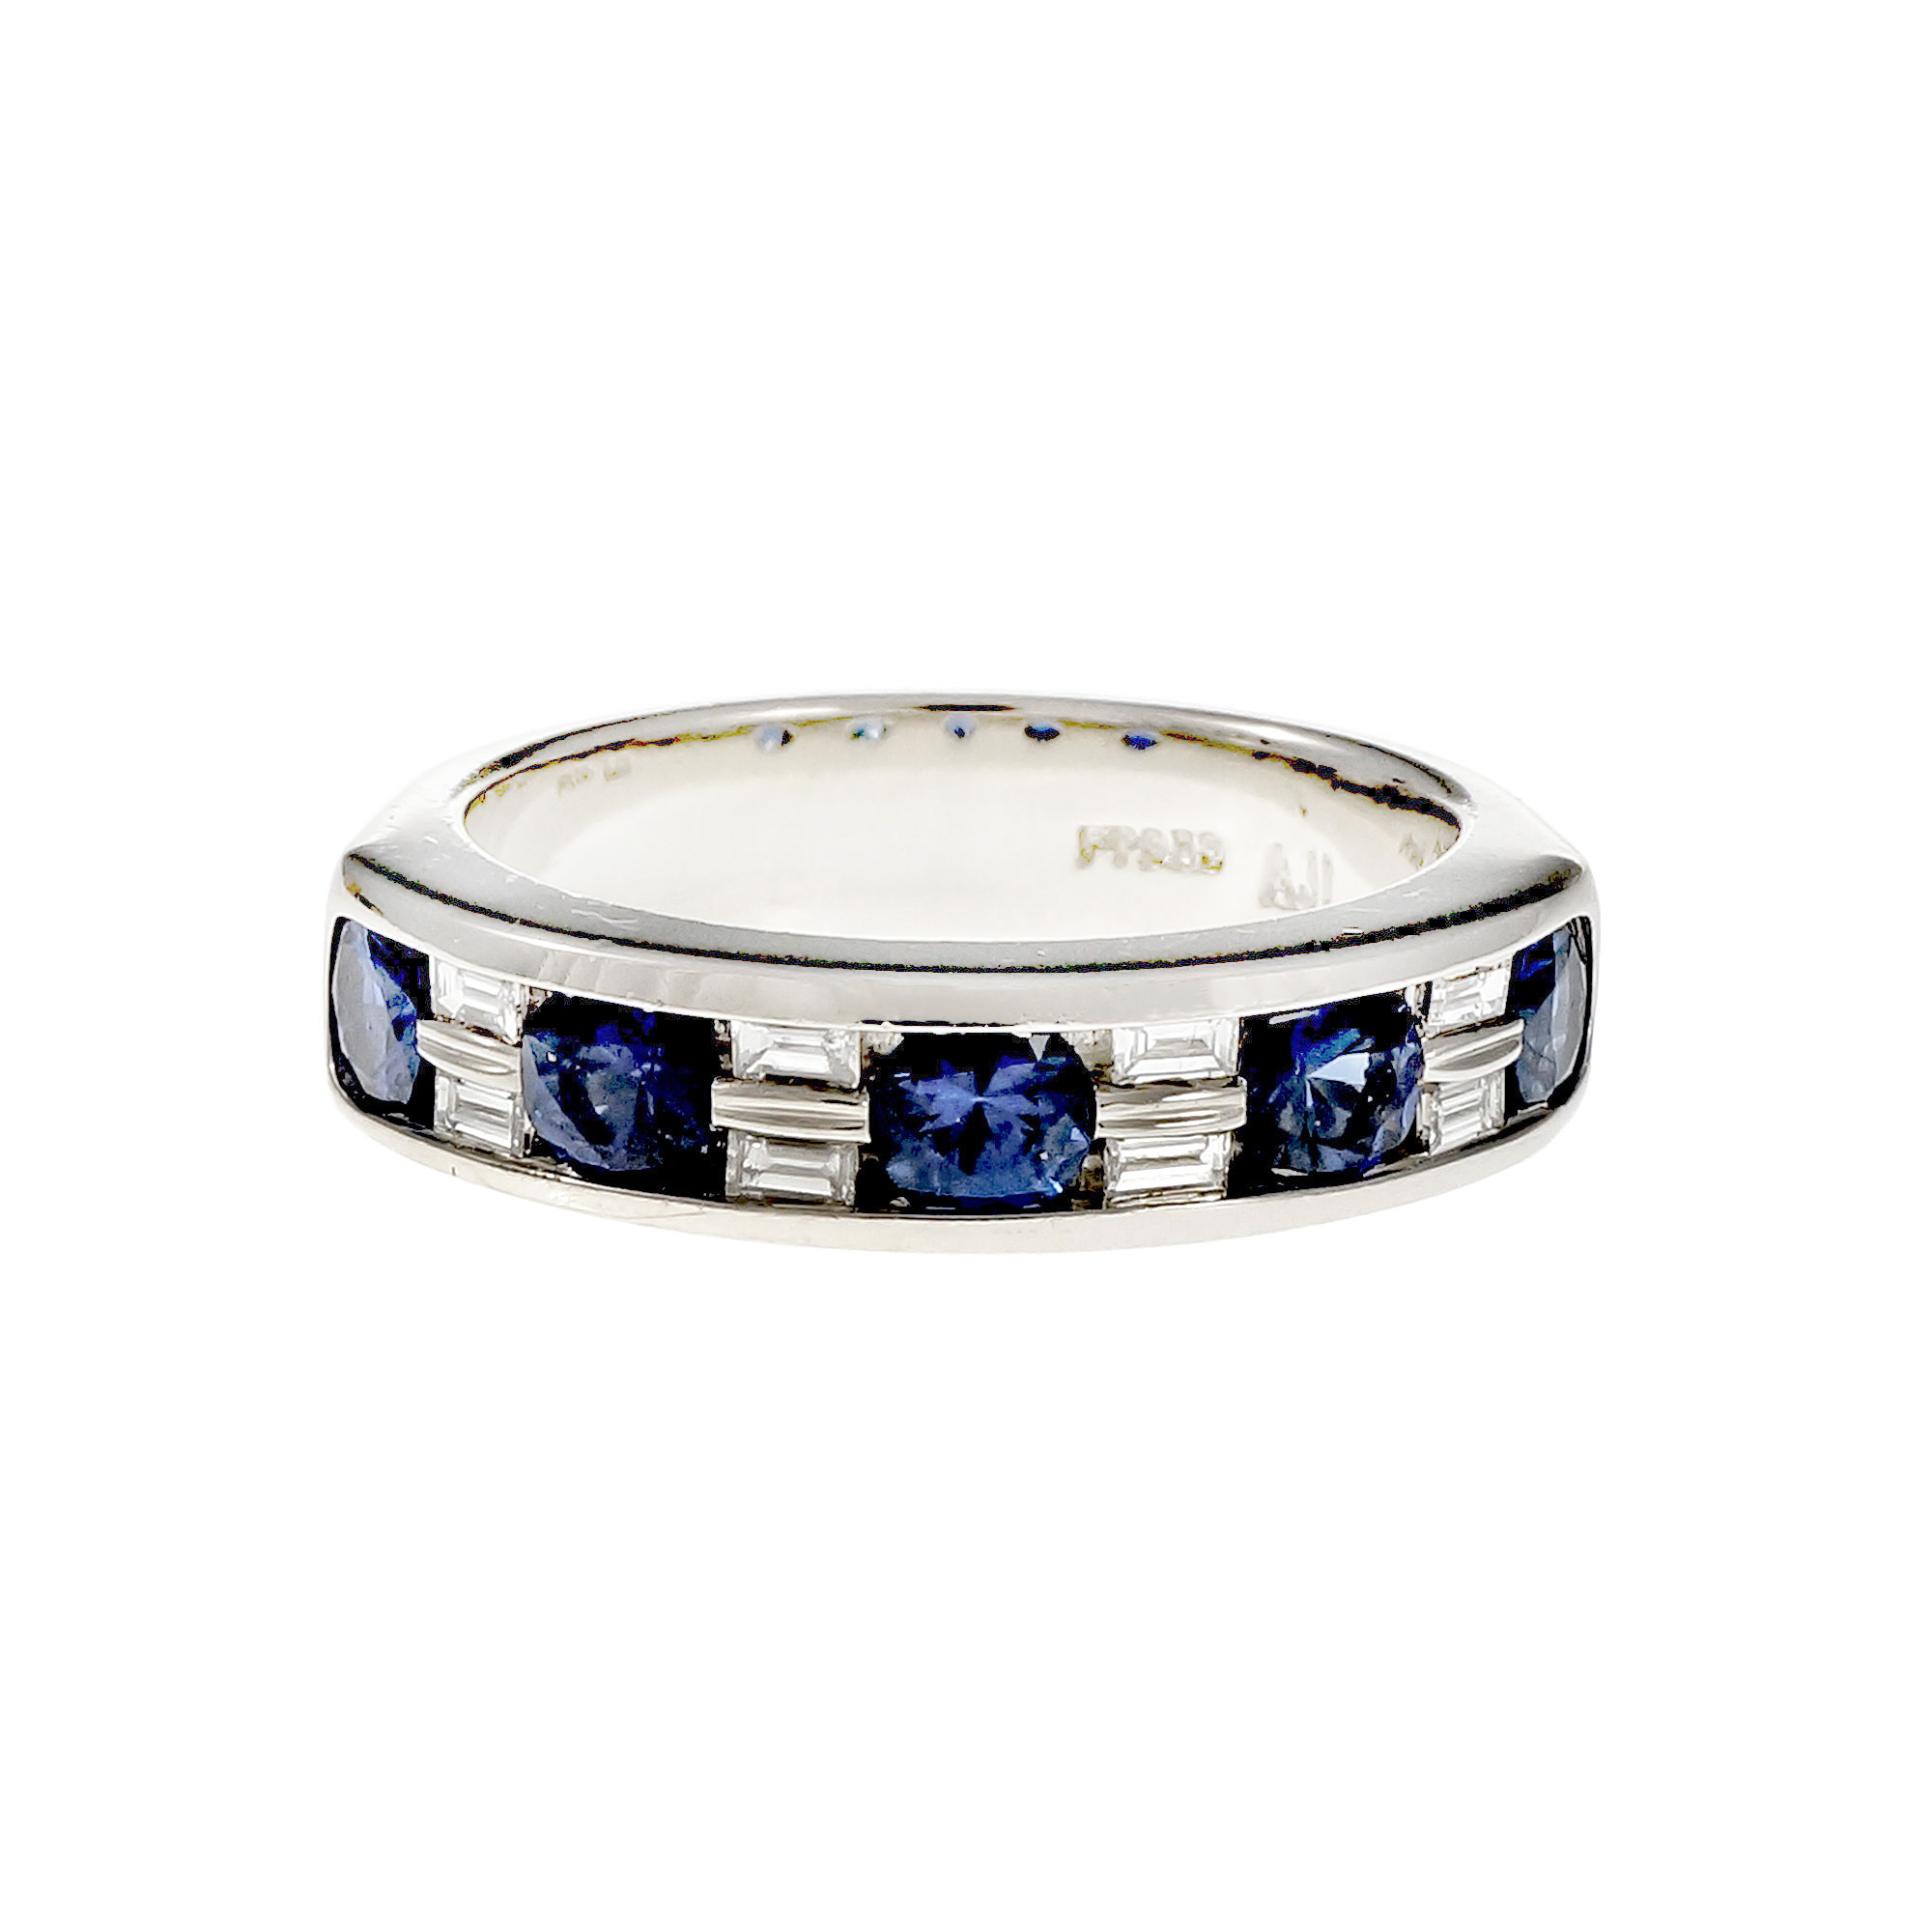 "Image of ""Platinum with Round Sapphire & Baguette Diamond Band Ring Size 6.5"""